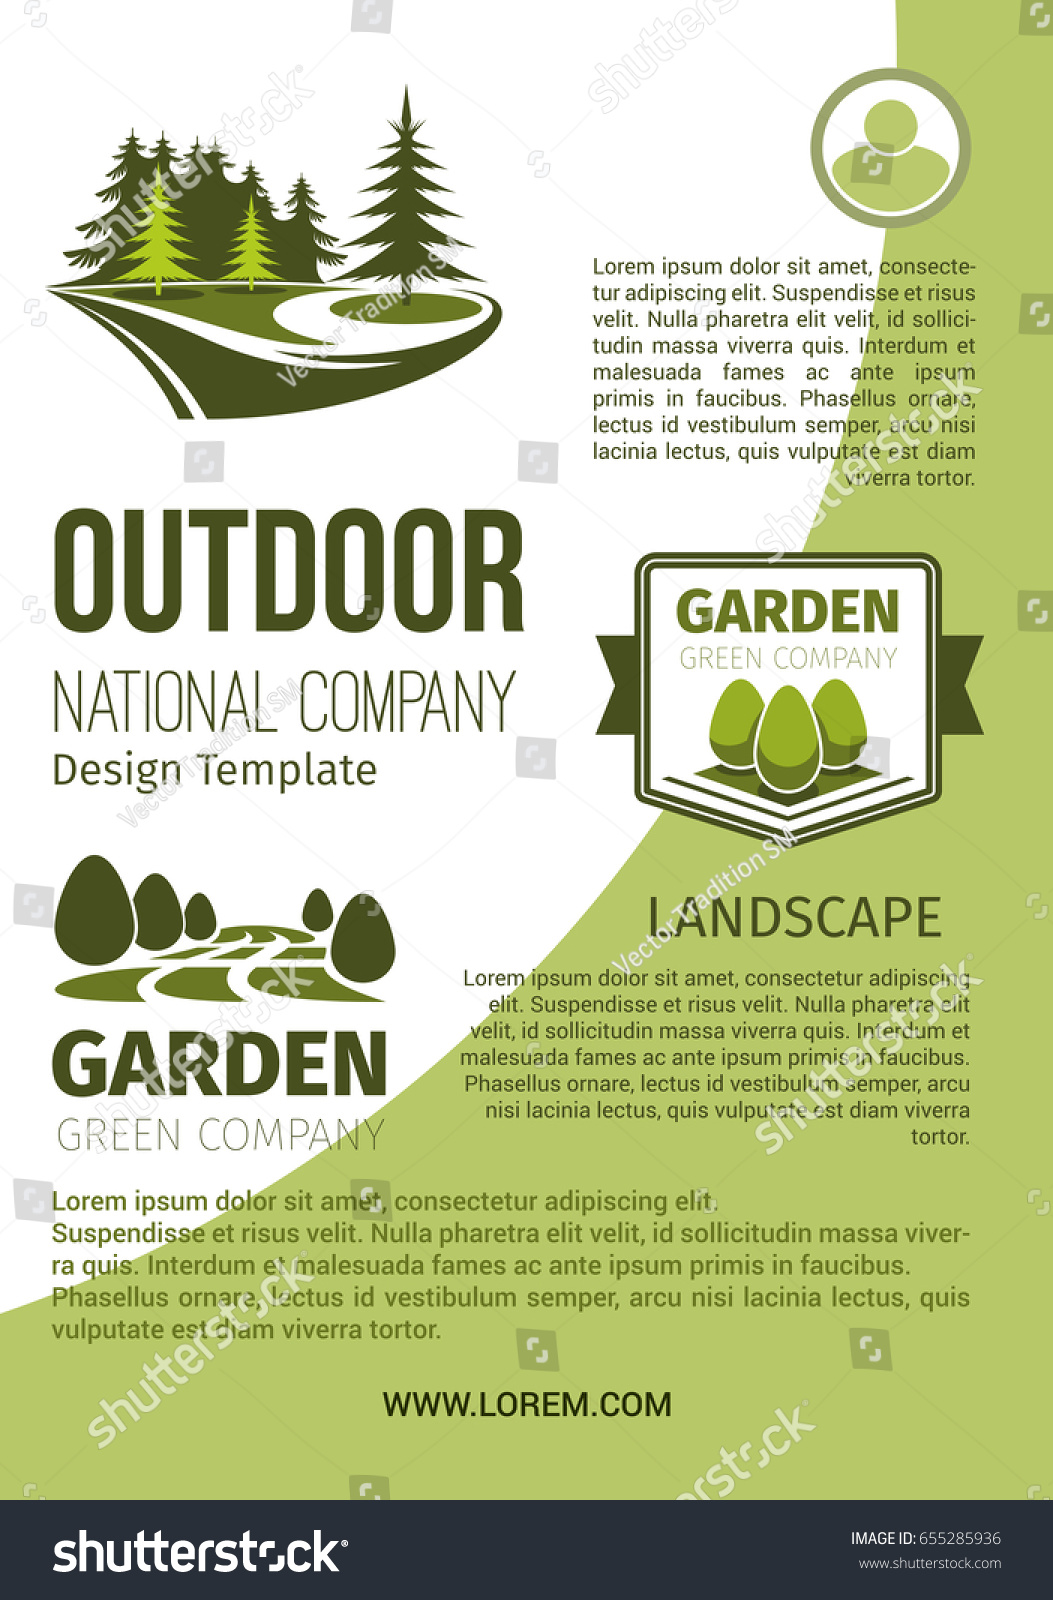 outdoor green landscape and garden designing company and horticulture organization poster design template vector park